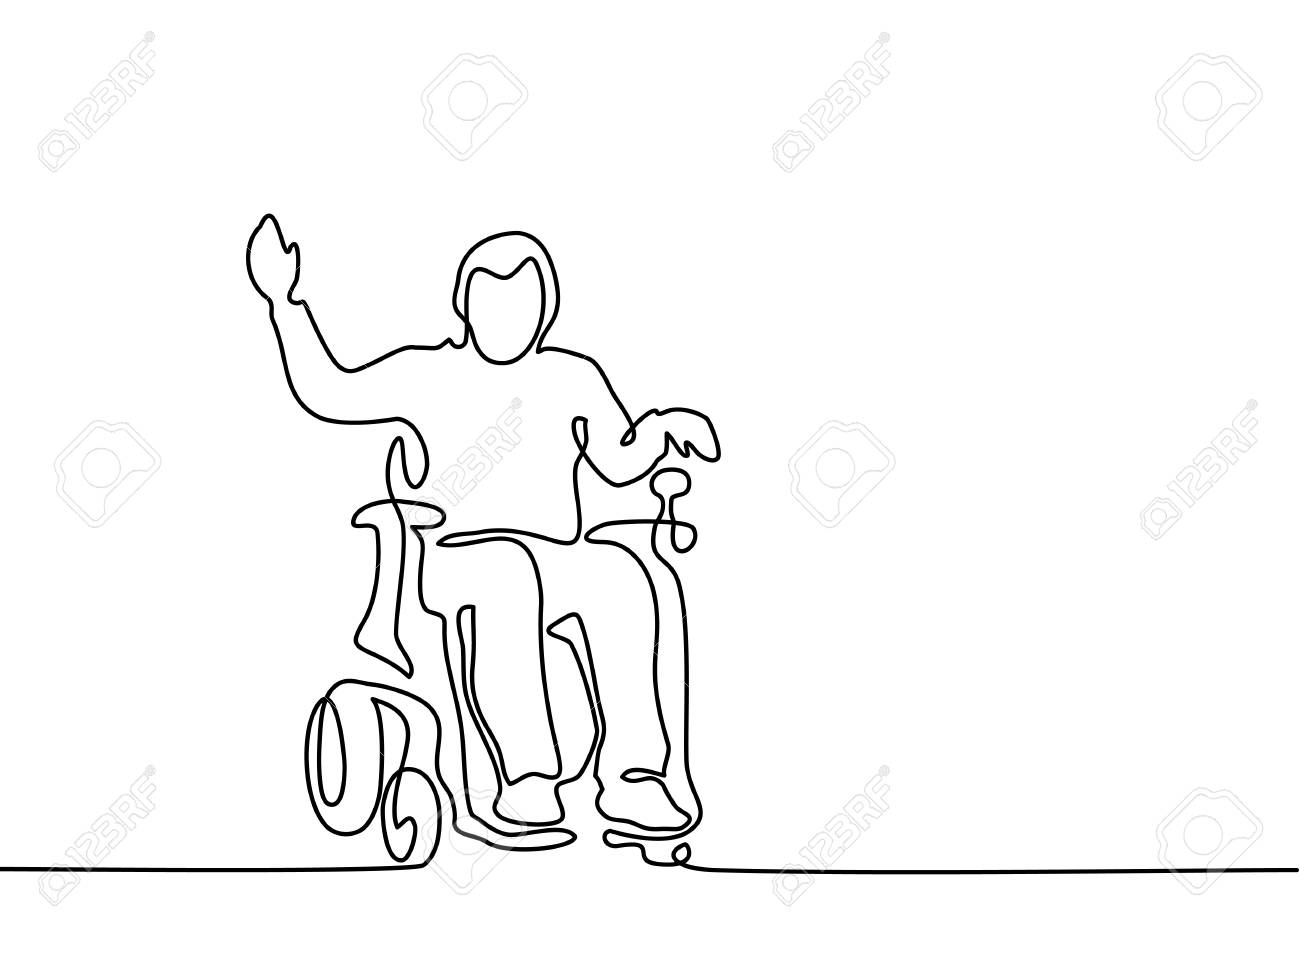 1300x975 Continuous Line Drawing. Disabled Man On Electric Wheelchair